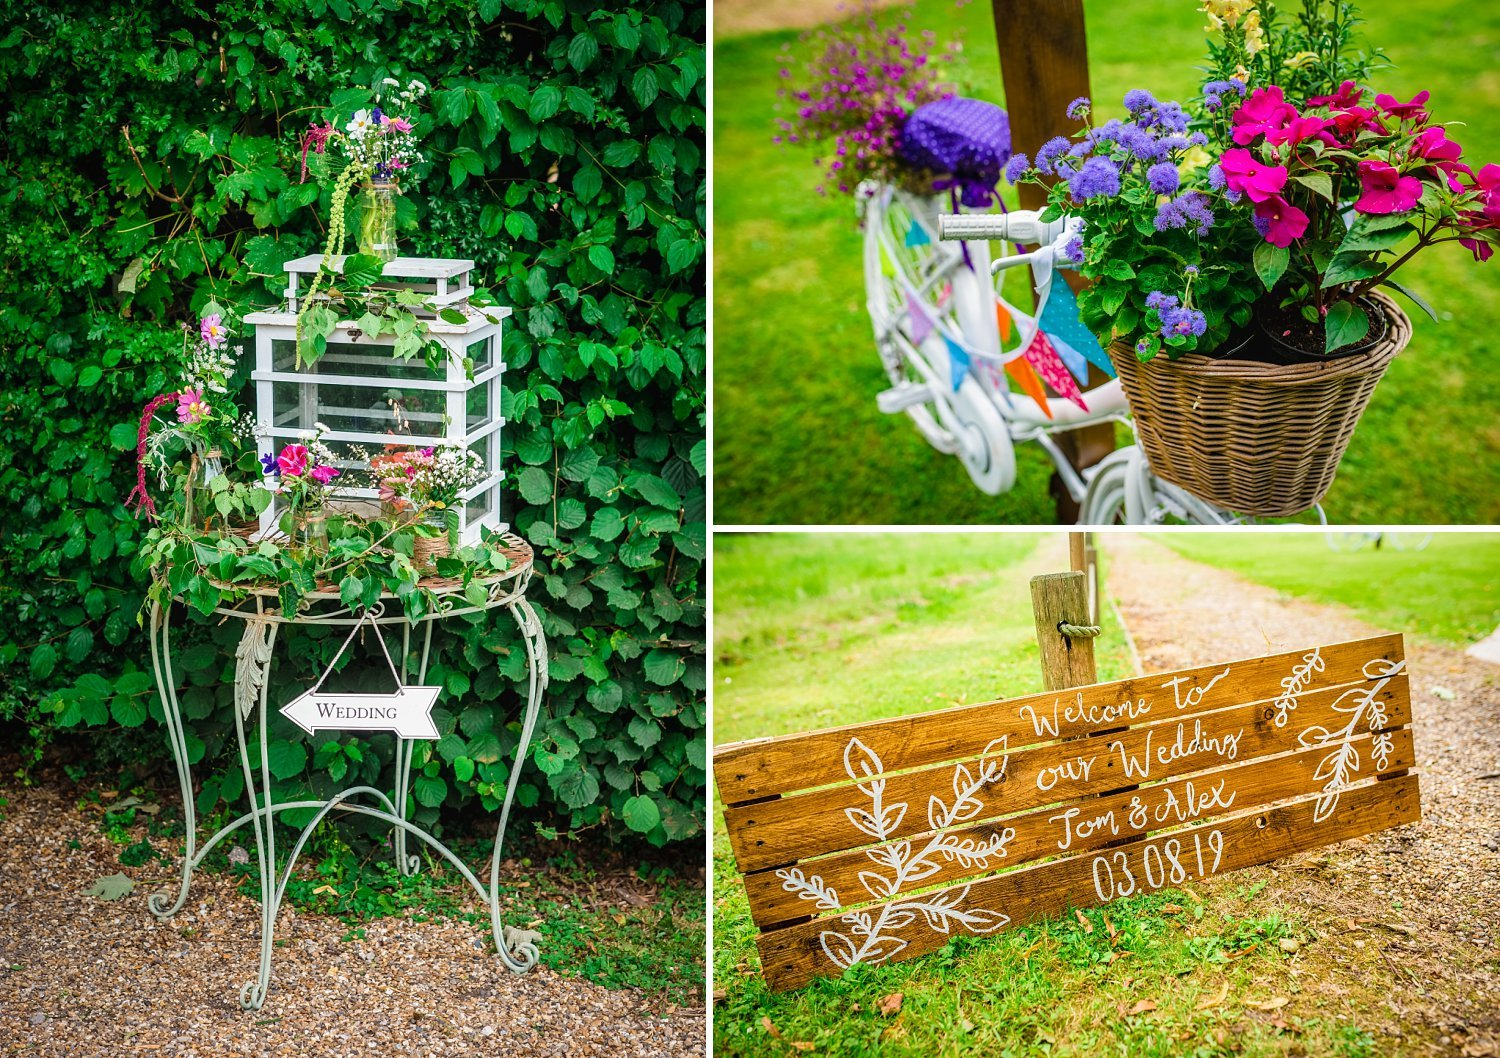 Duncton Mill Fishery Wedding - details